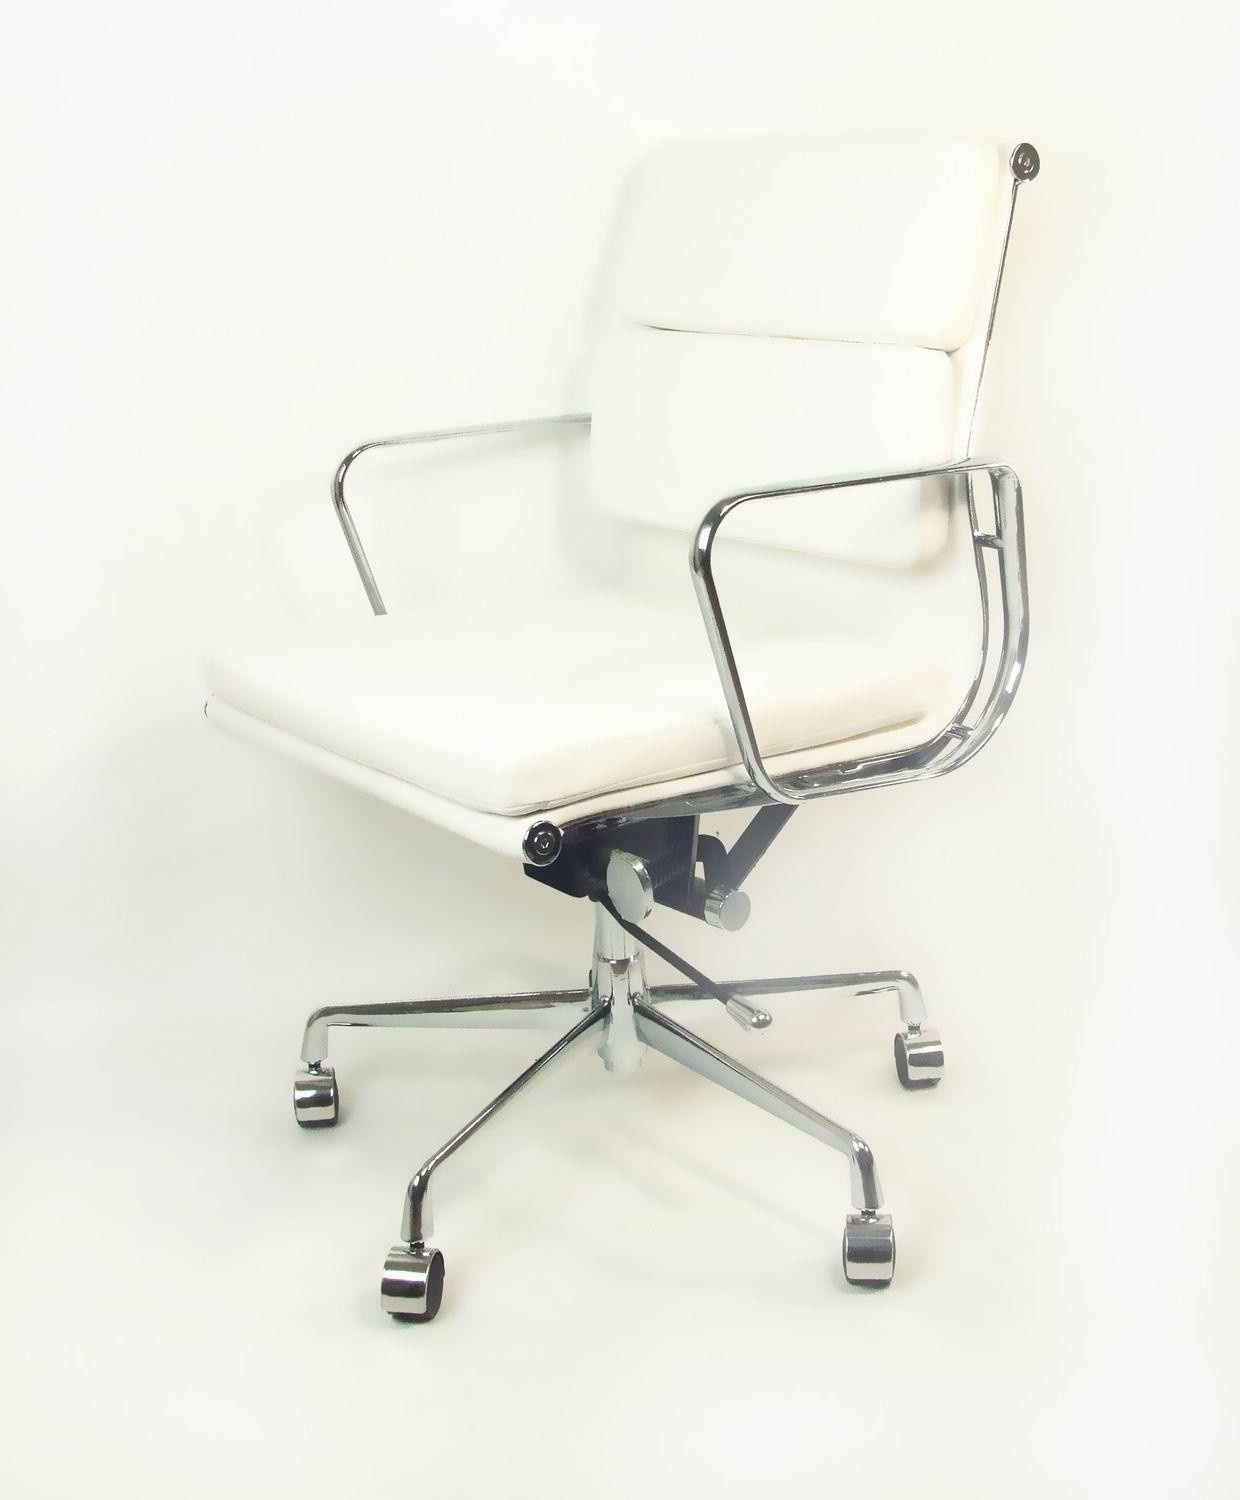 Interior Design Blogs Intended For Latest Ergonomic Ultra Modern White Executive Office Chairs (View 9 of 20)